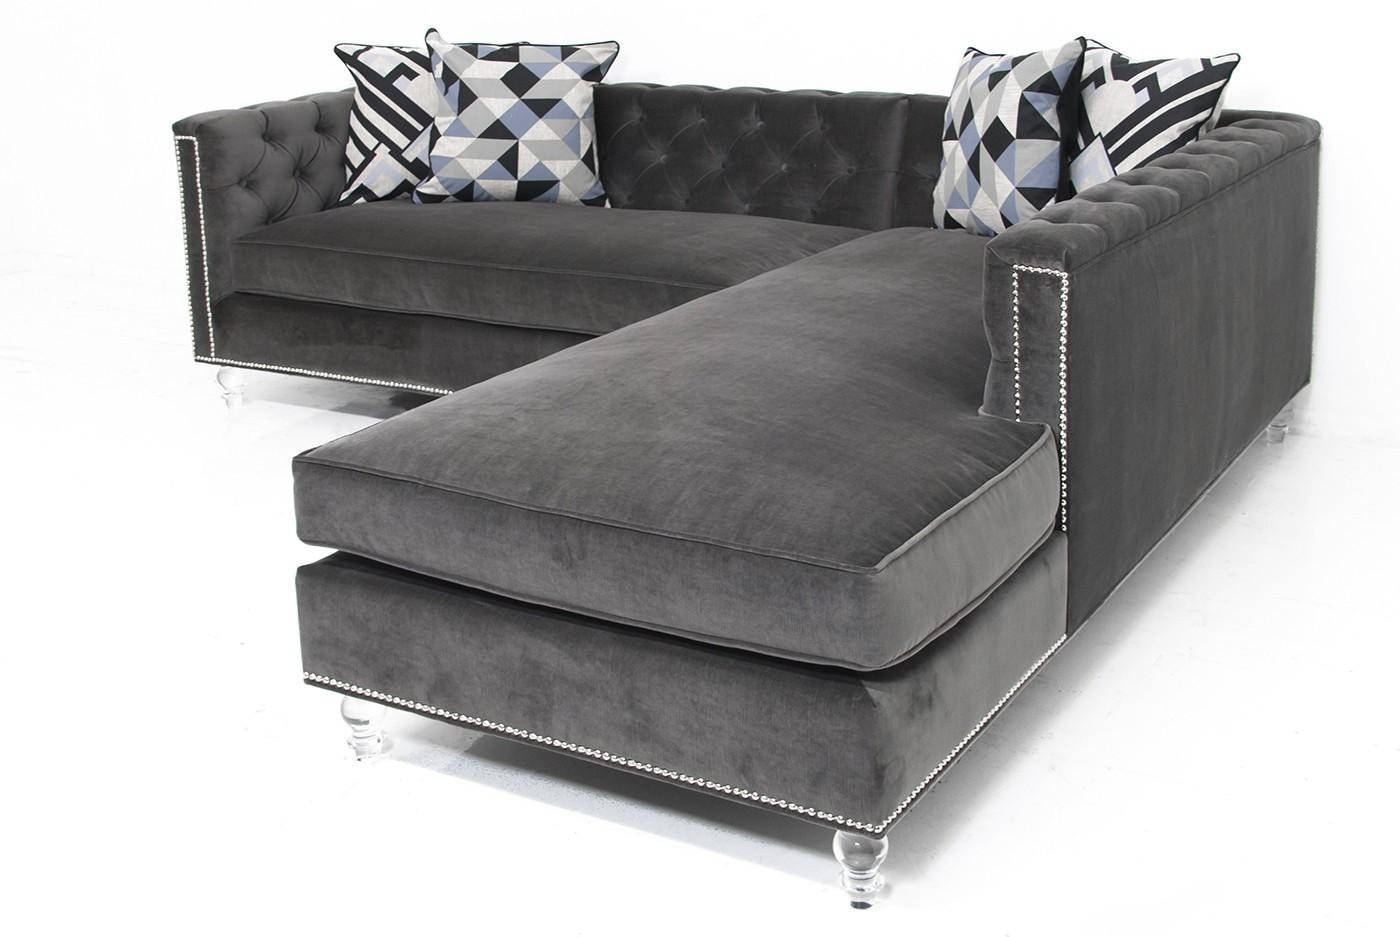 20 photos tufted sectional sofa chaise sofa ideas for Berkline callisburgh sofa chaise